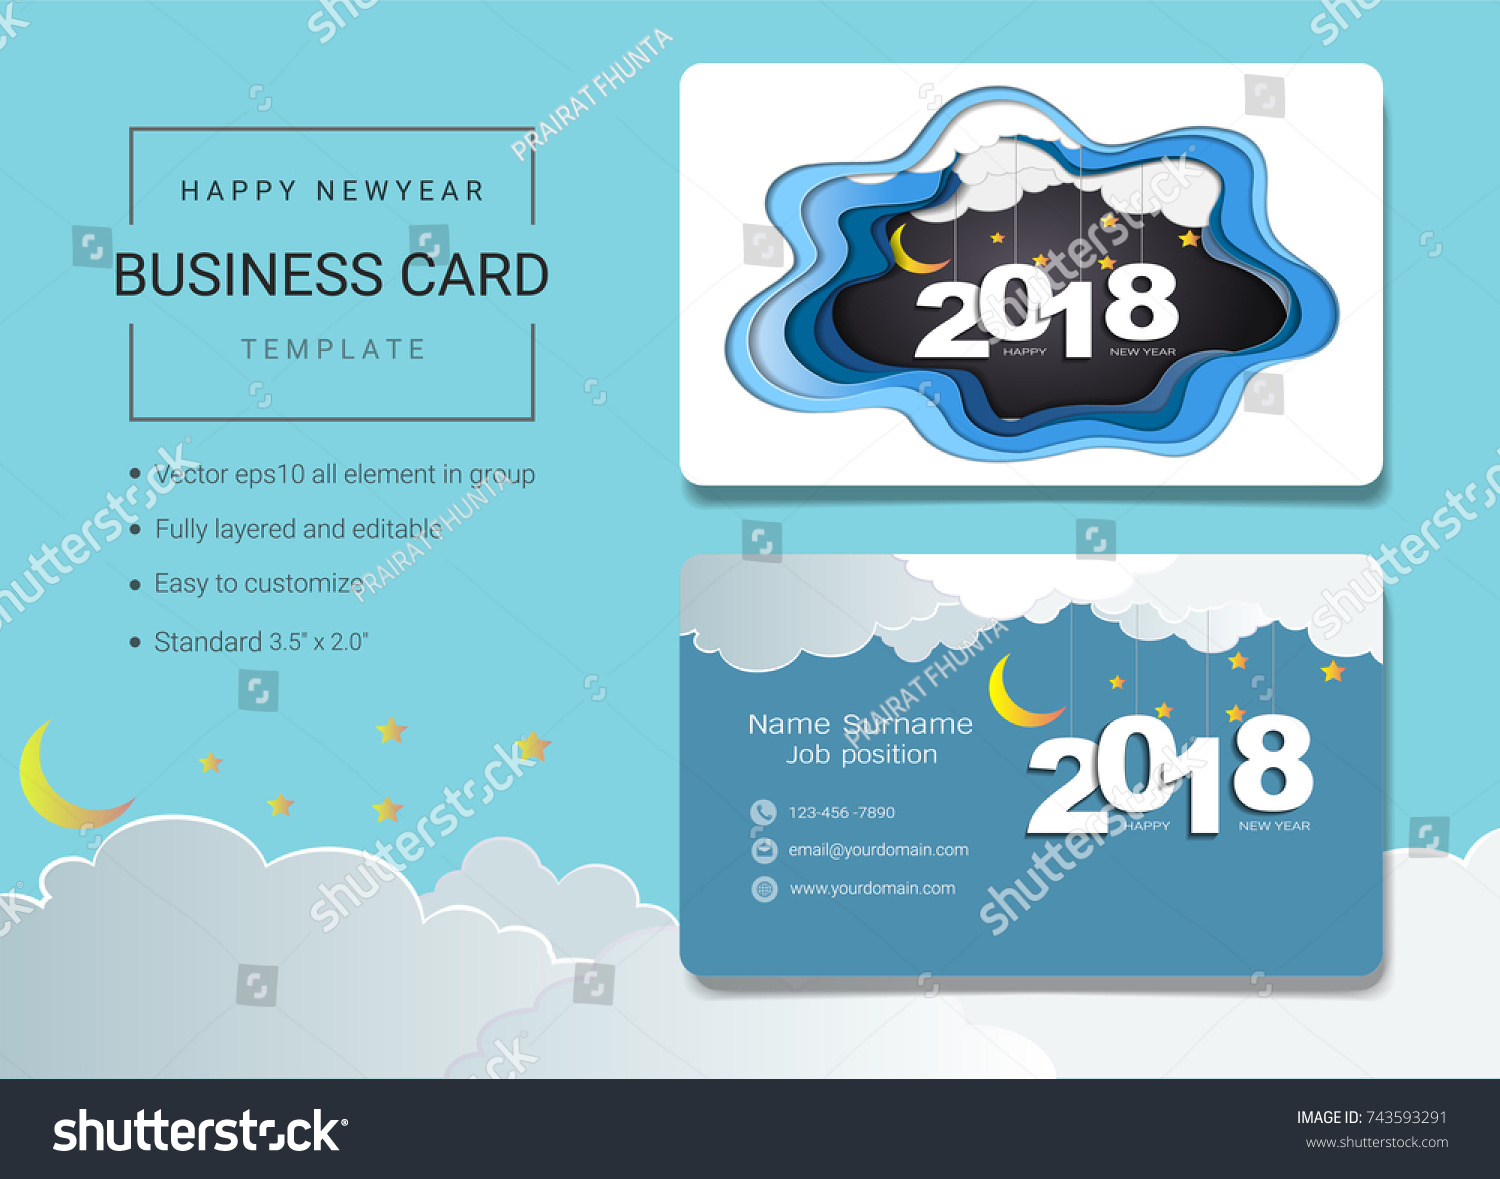 2018 Happy New Year Business Card Stock Vector 743593291 ...